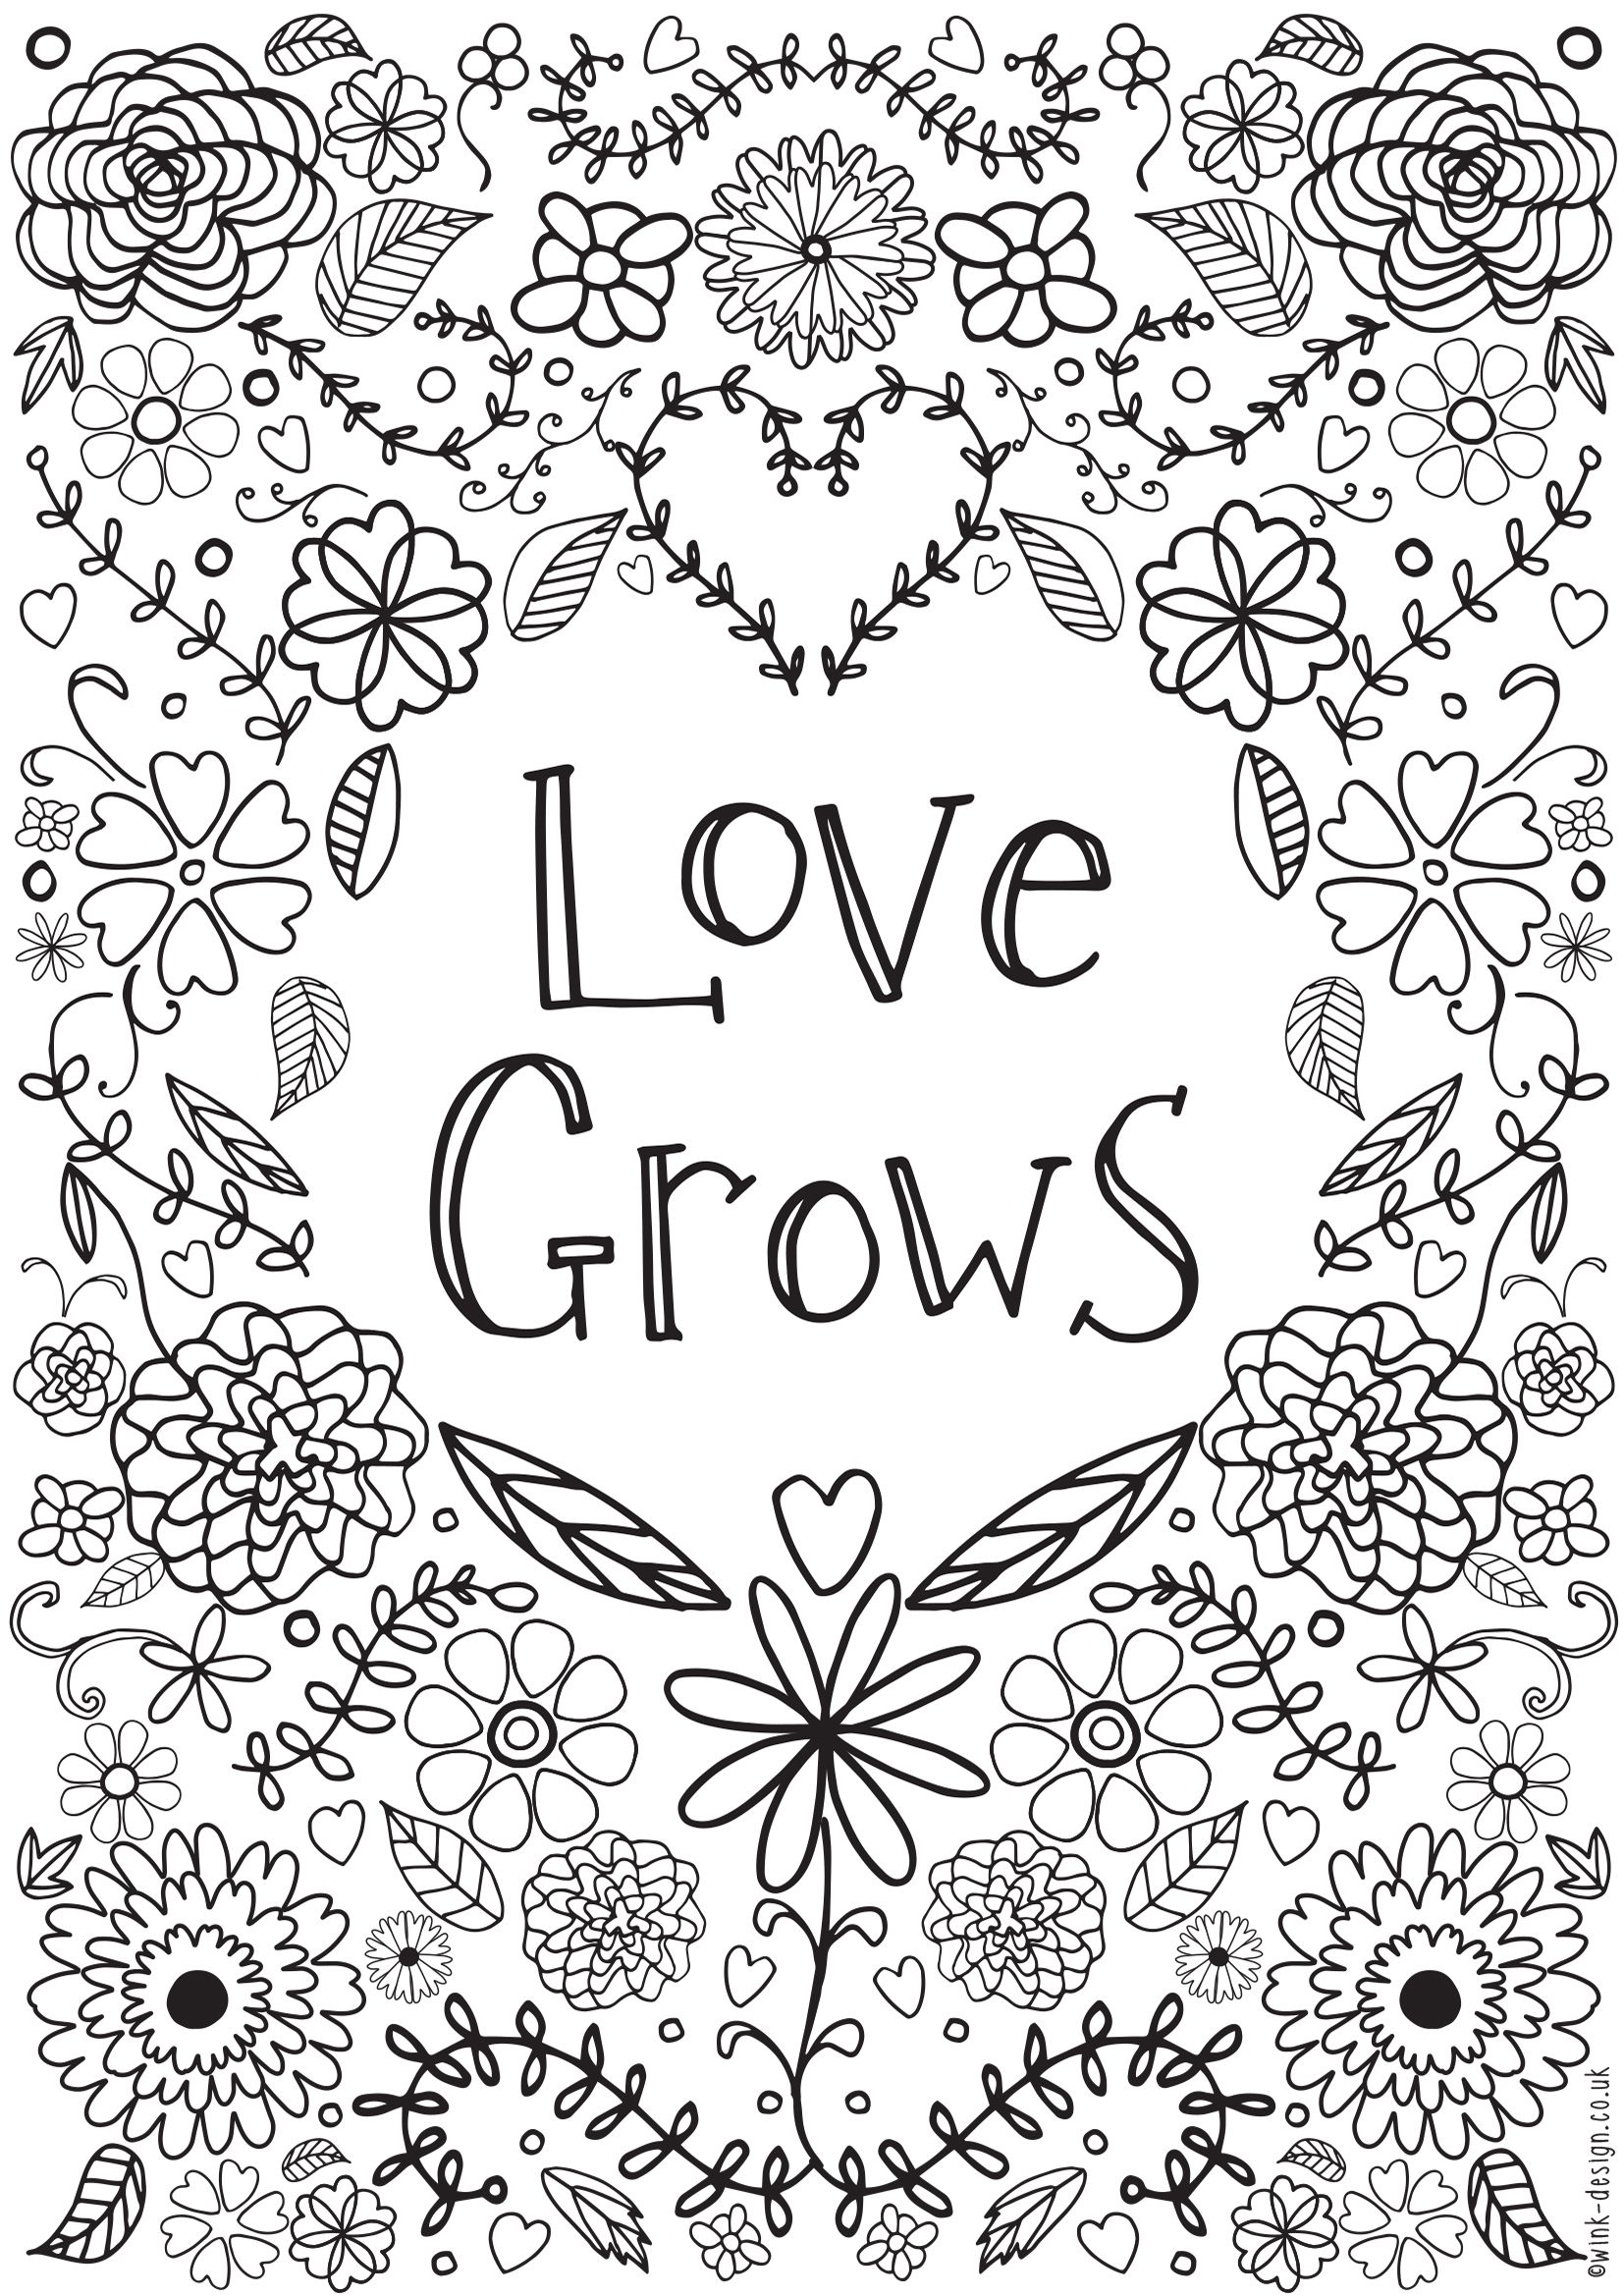 Colouring Pages For Adults With Quotes : Love grows colouring adult coloring free printable and